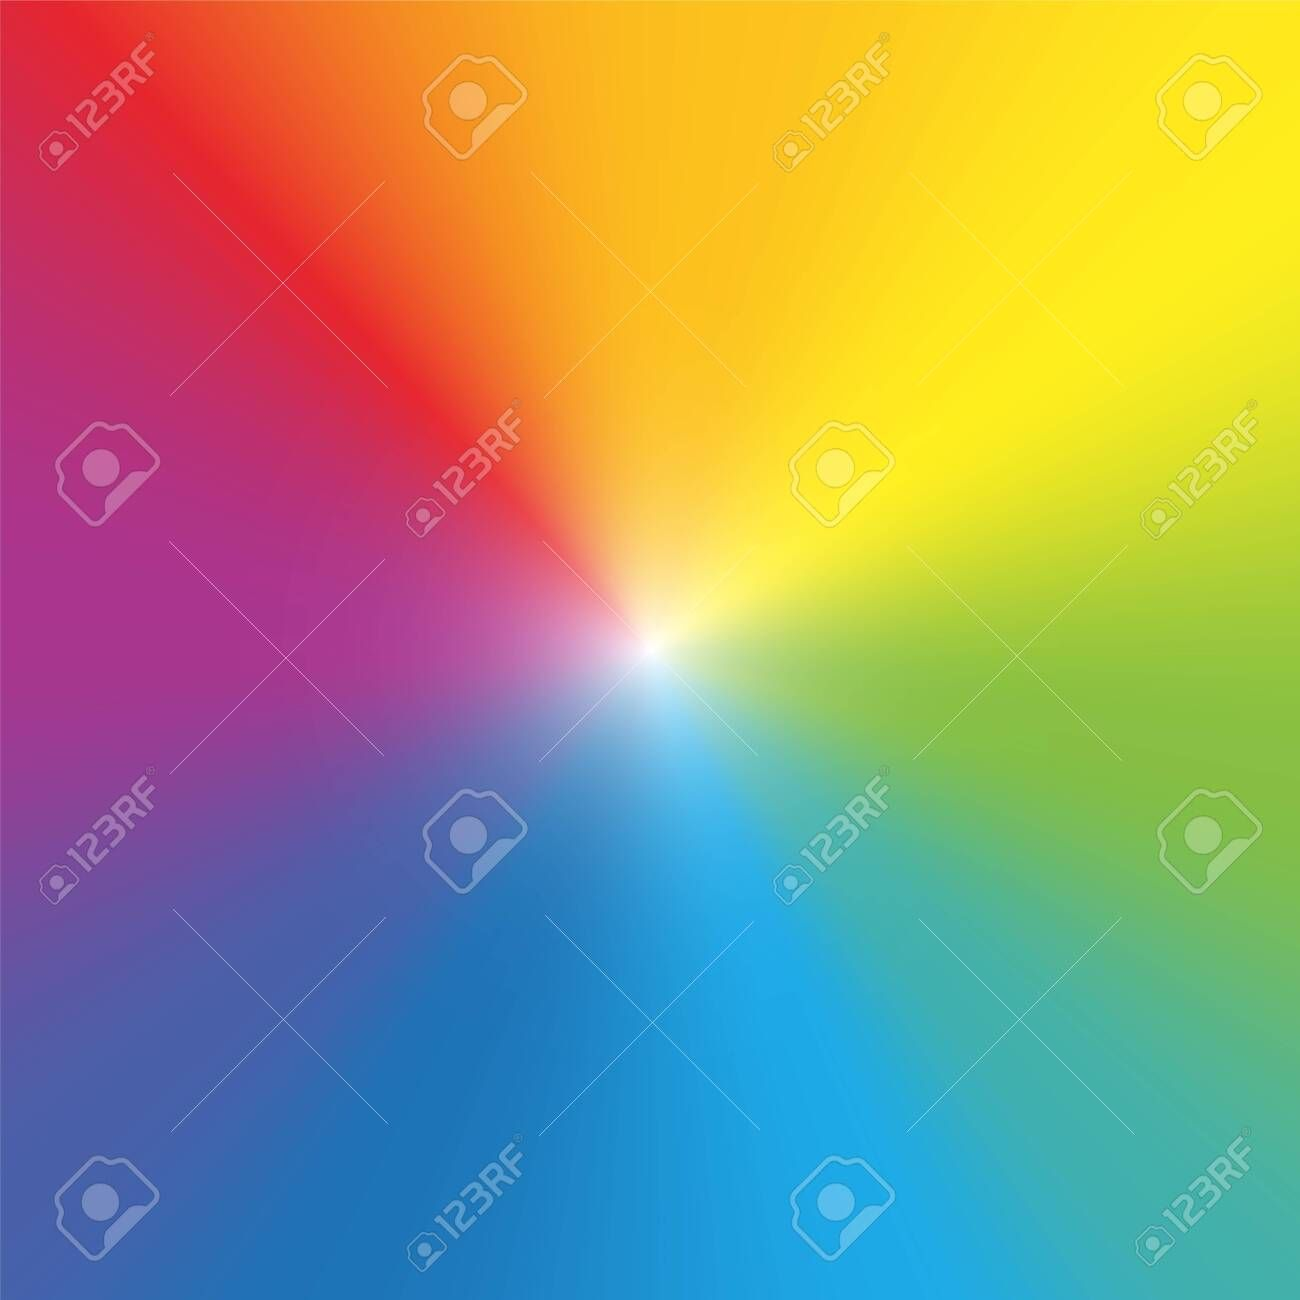 Rainbow Color Background Wallpaper Gradient Spectral Colored Rays